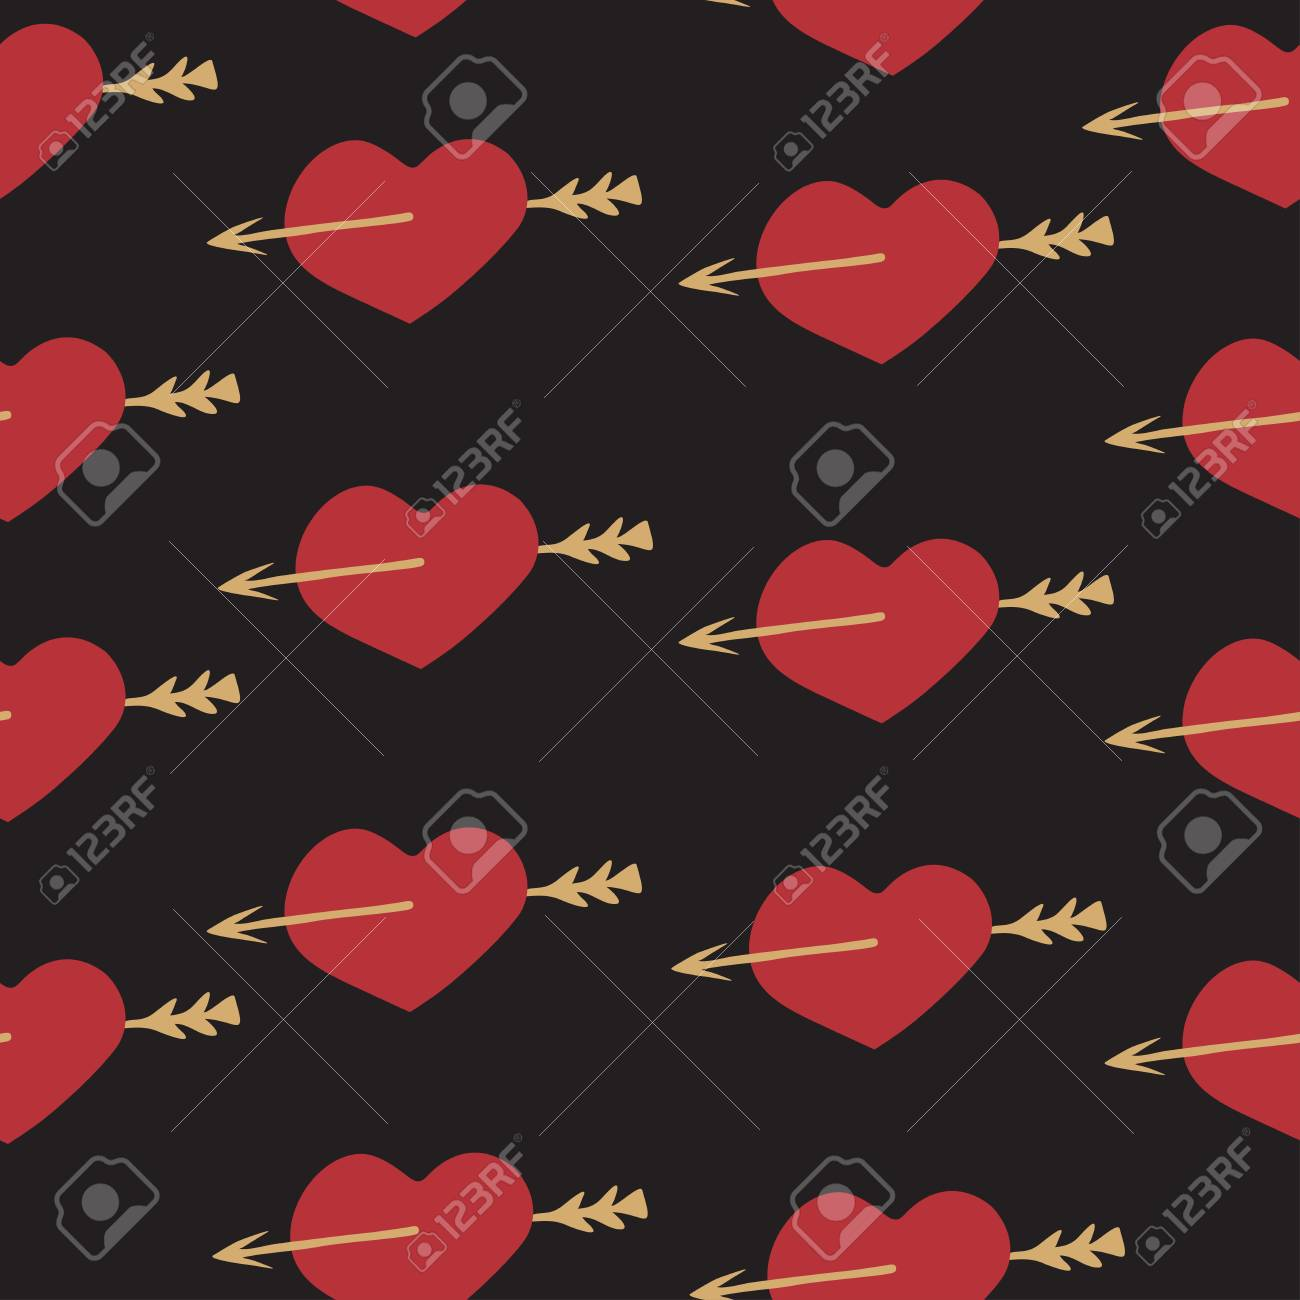 Love Seamless Pattern Romantic Elements Heart And Arrow For ...